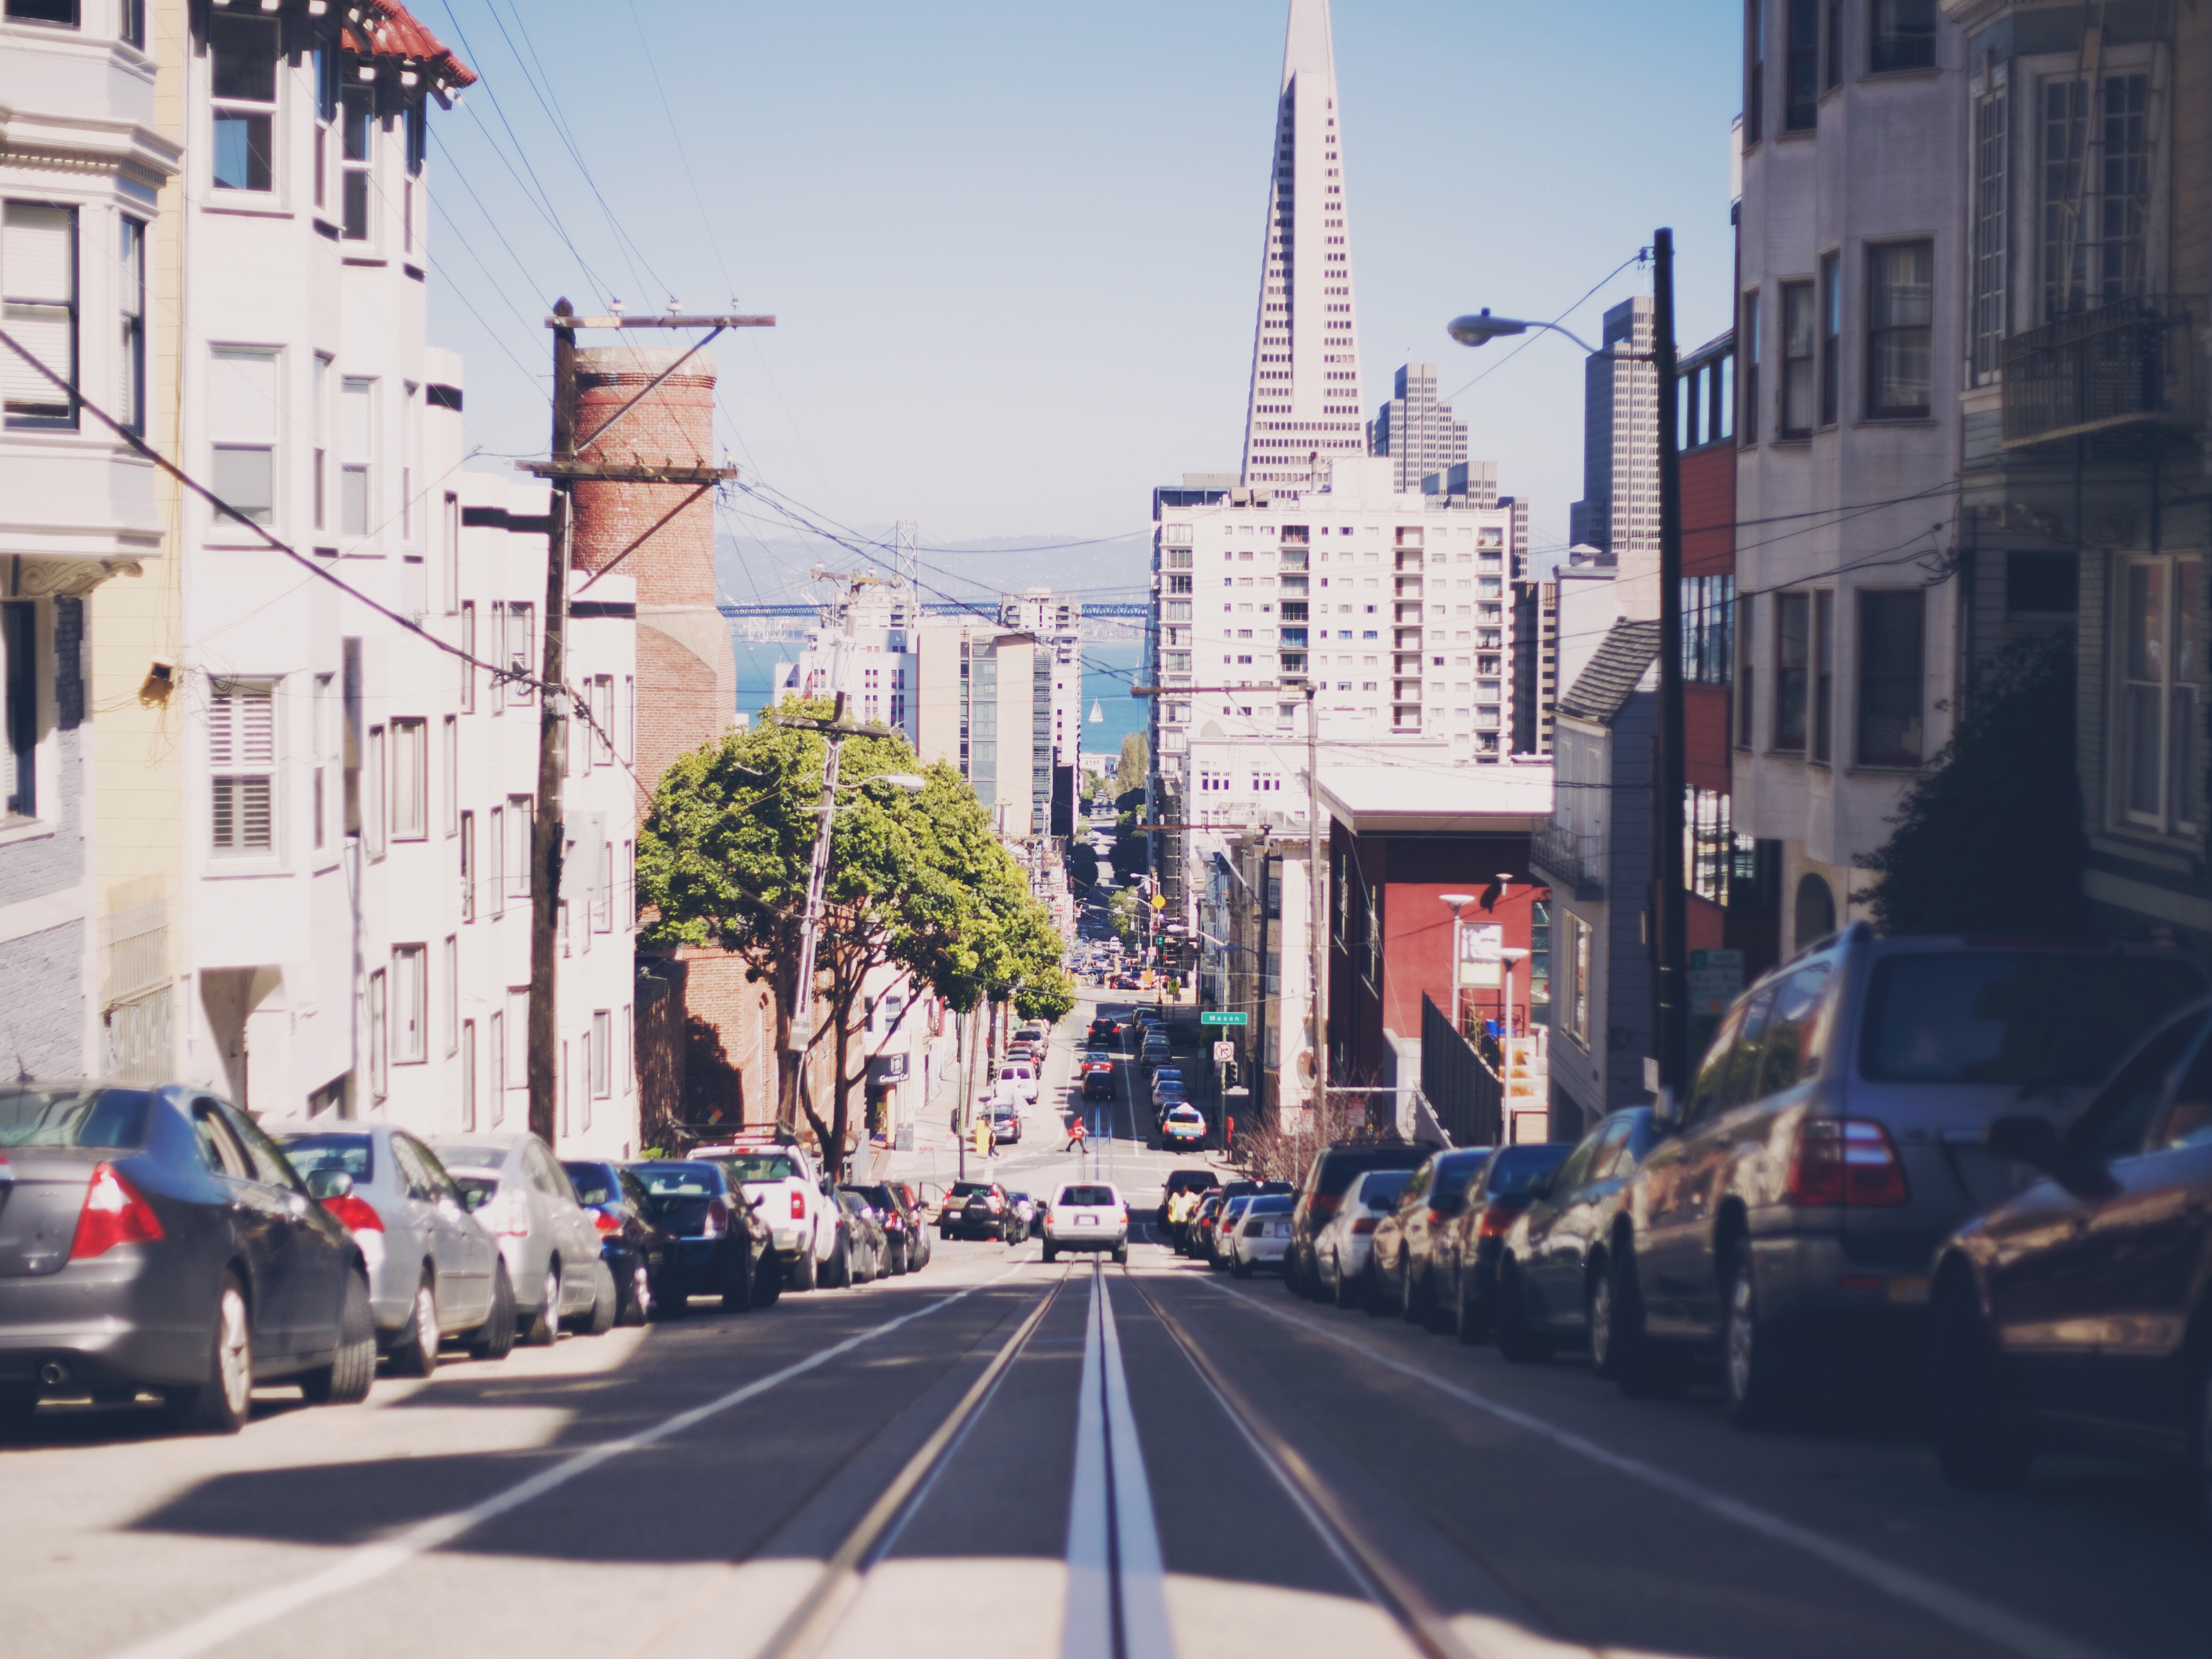 San Francisco's CityPASS shows off top attractions with discounted pricing